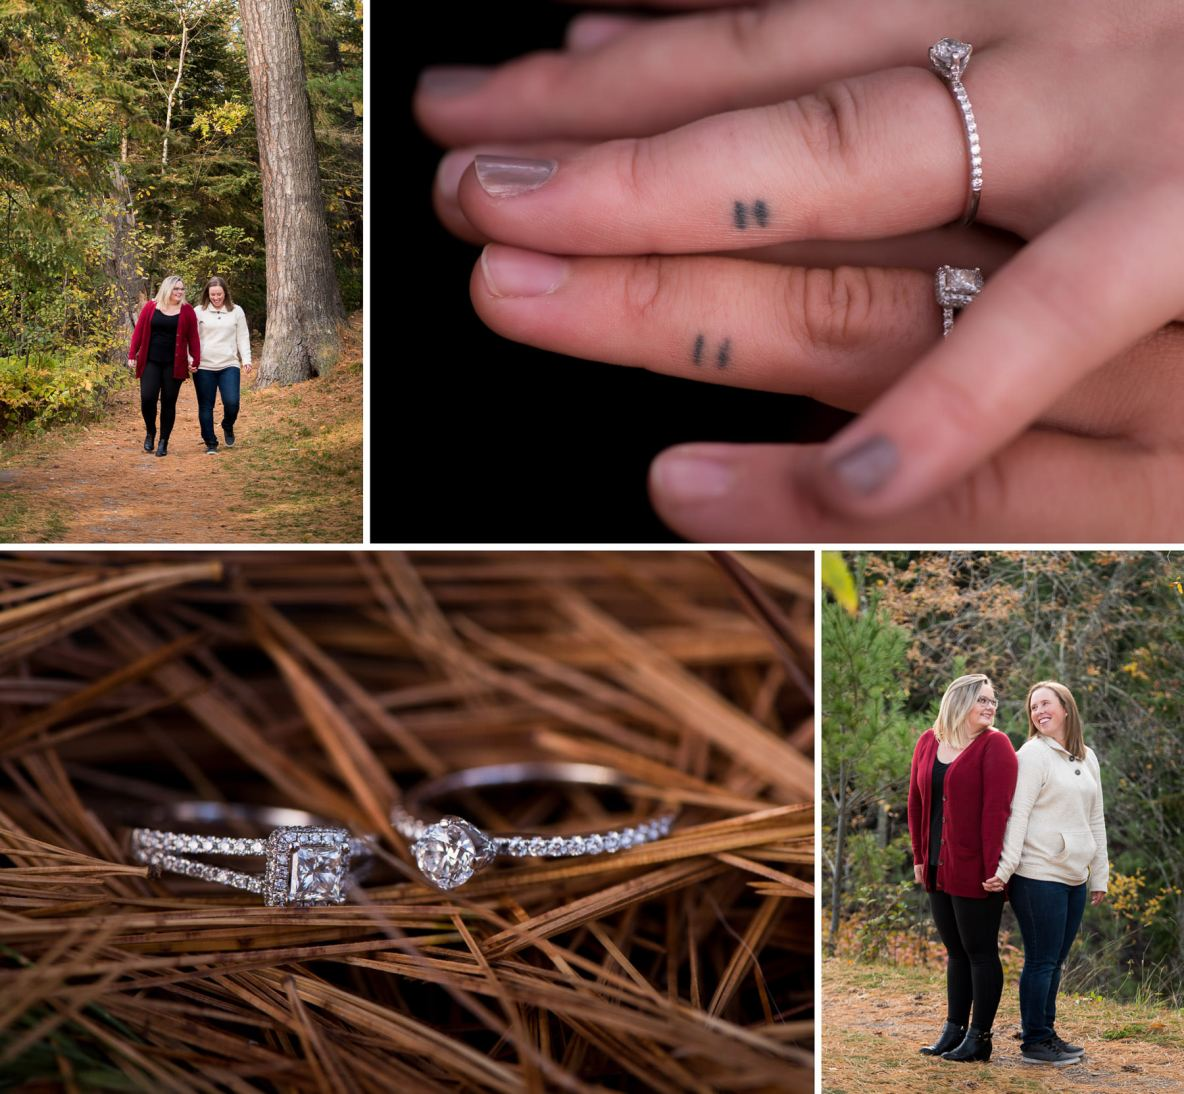 Engagement session outside in fall colors, photos of engagement ring and matching equal sign tattoos.